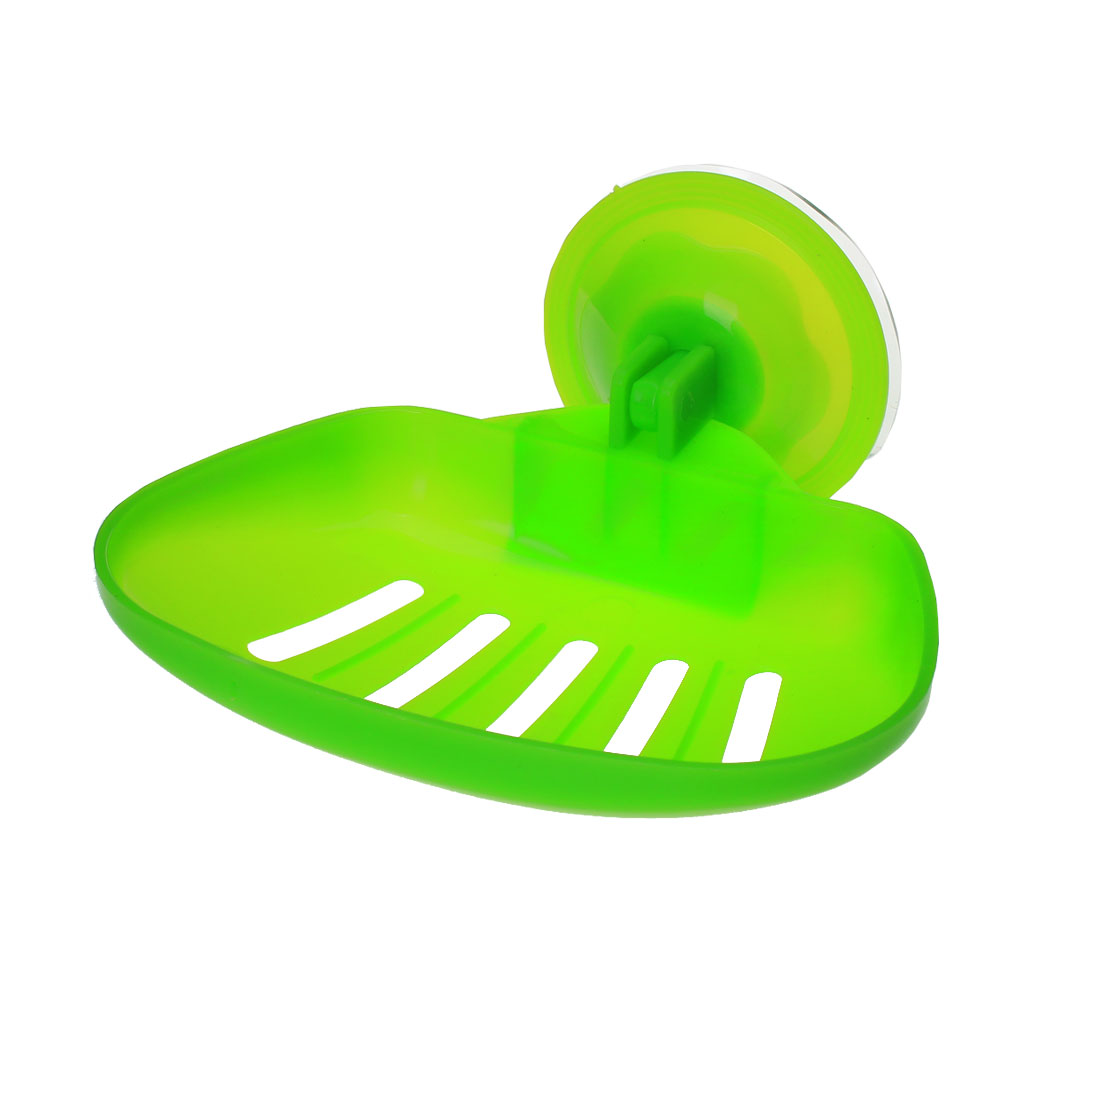 Household Washroom Wall Plastic Hollow Out Suction Cup Soap Holder Tray Green